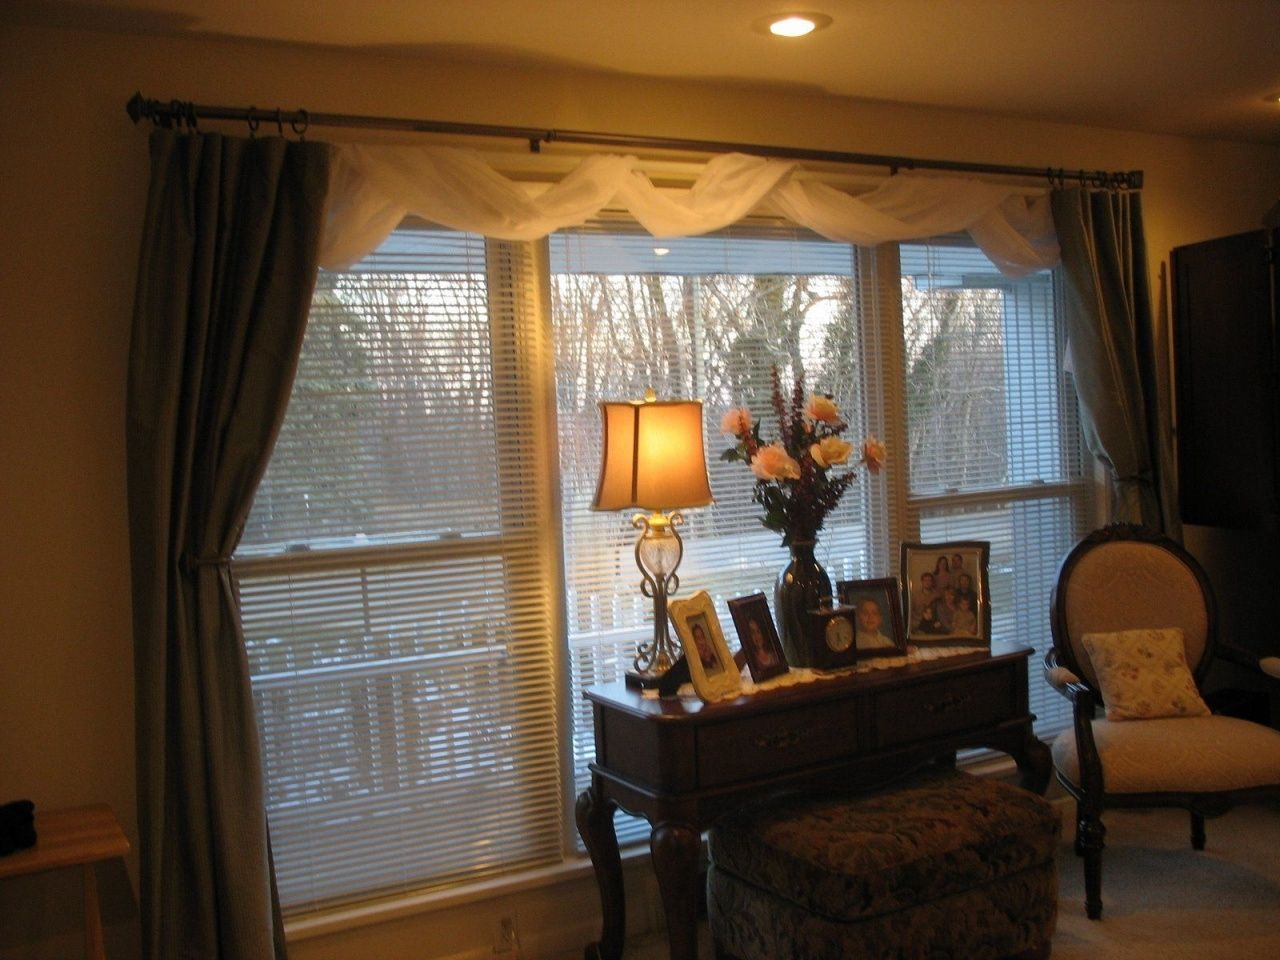 Most Amazing Large Living Room Window Curtains In 2020 Living Room Blinds Window Treatments Living Room Living Room Windows